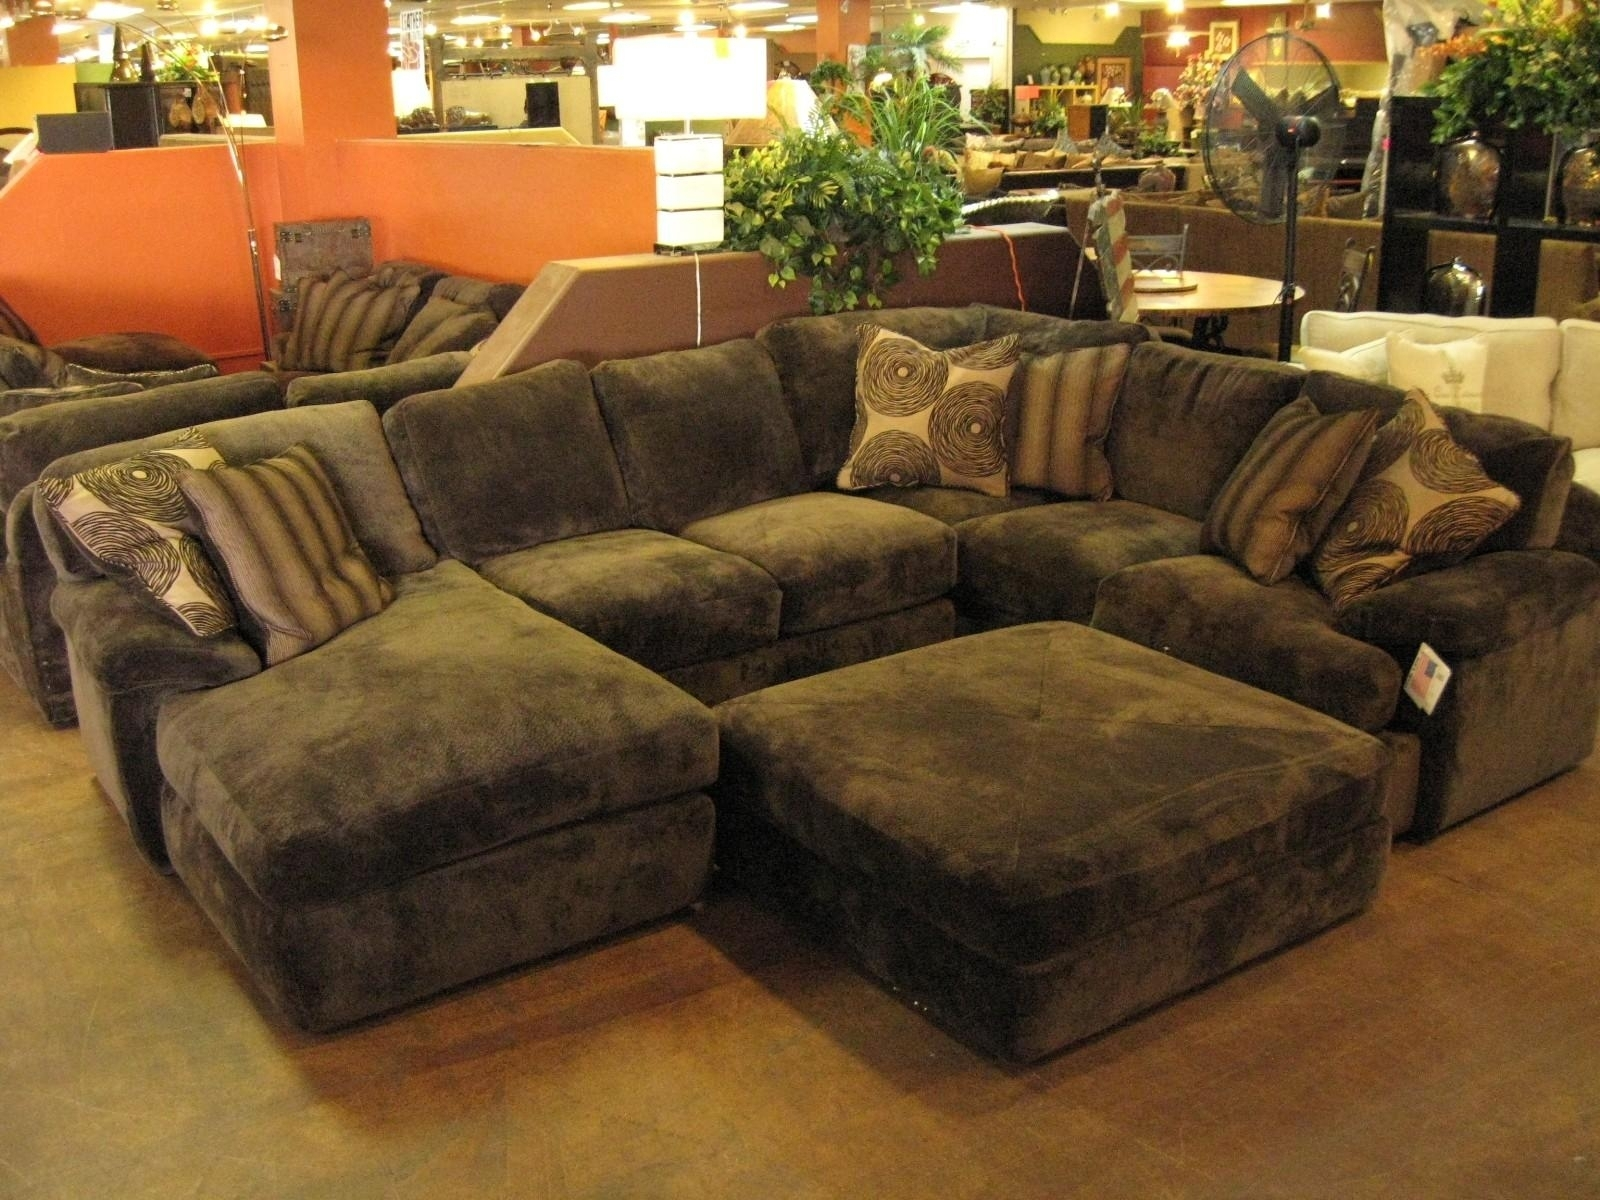 20 Top Sectional Sofa With Large Ottoman | Sofa Ideas with regard to Sectional Sofas With Ottoman (Image 1 of 15)